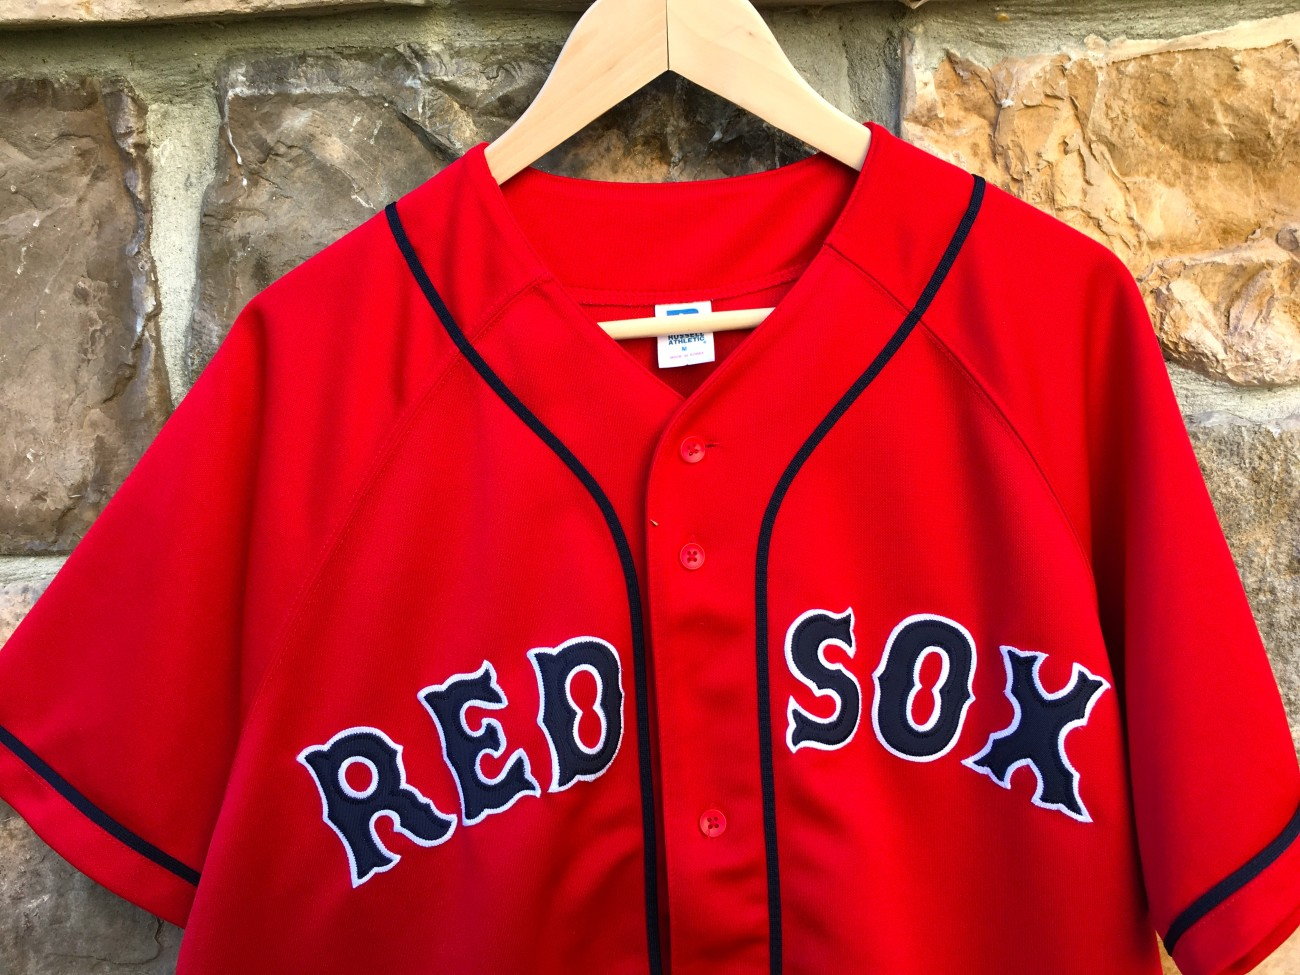 online retailer 5af7c f51e0 2003 Boston Red Sox Red Alternate Russell MLB Jersey Size Medium